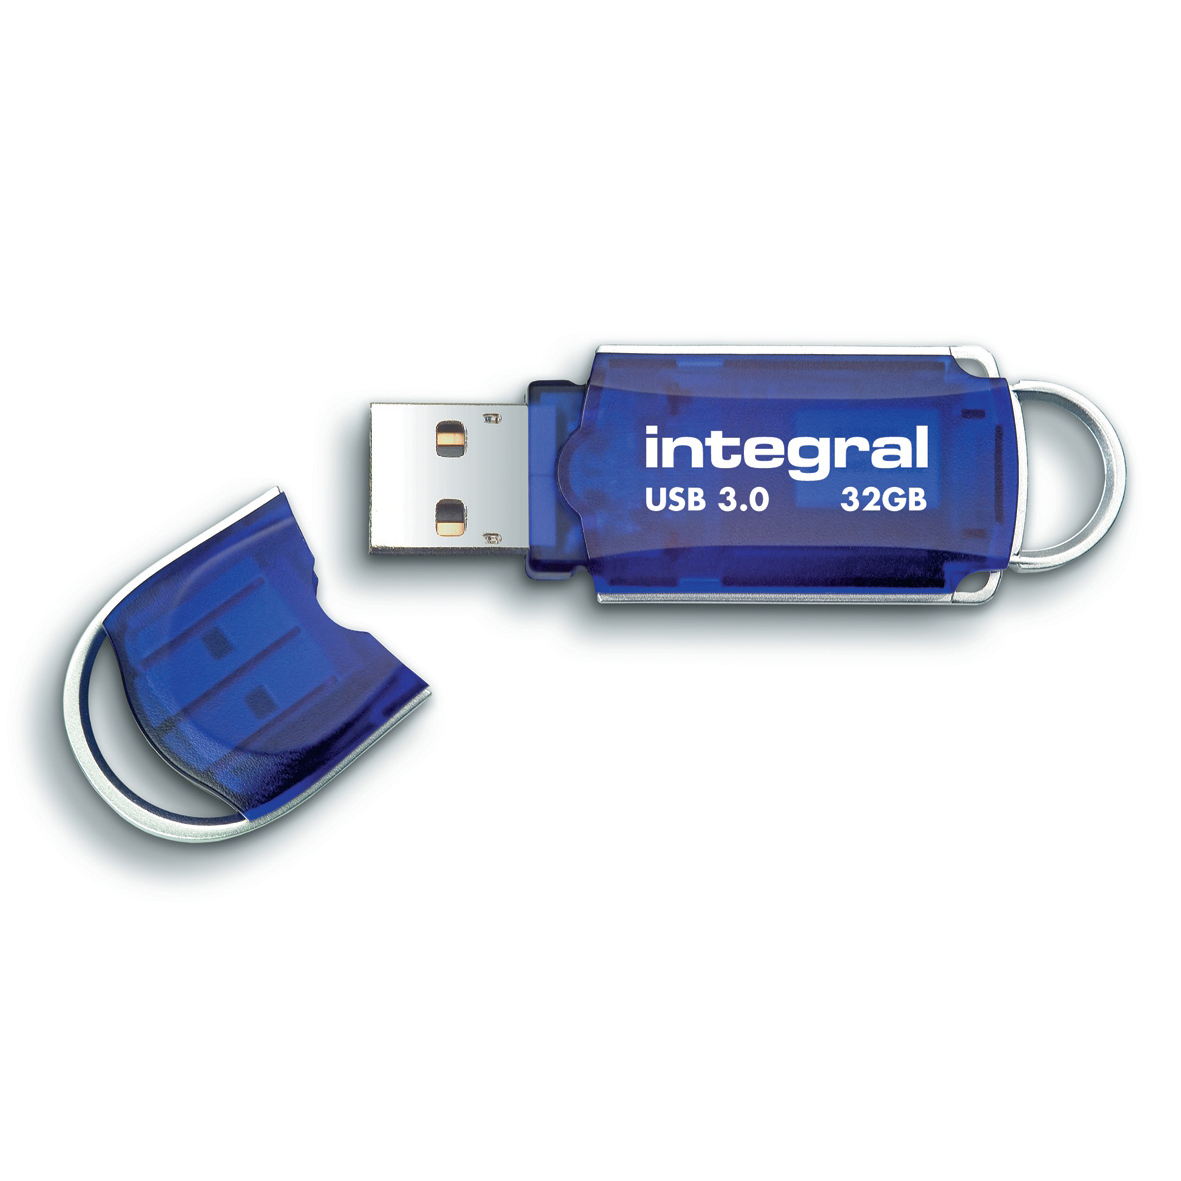 Integral Courier Flash Drive USB 3.0 Blue 32GB Ref INFD32GBCOU3.0